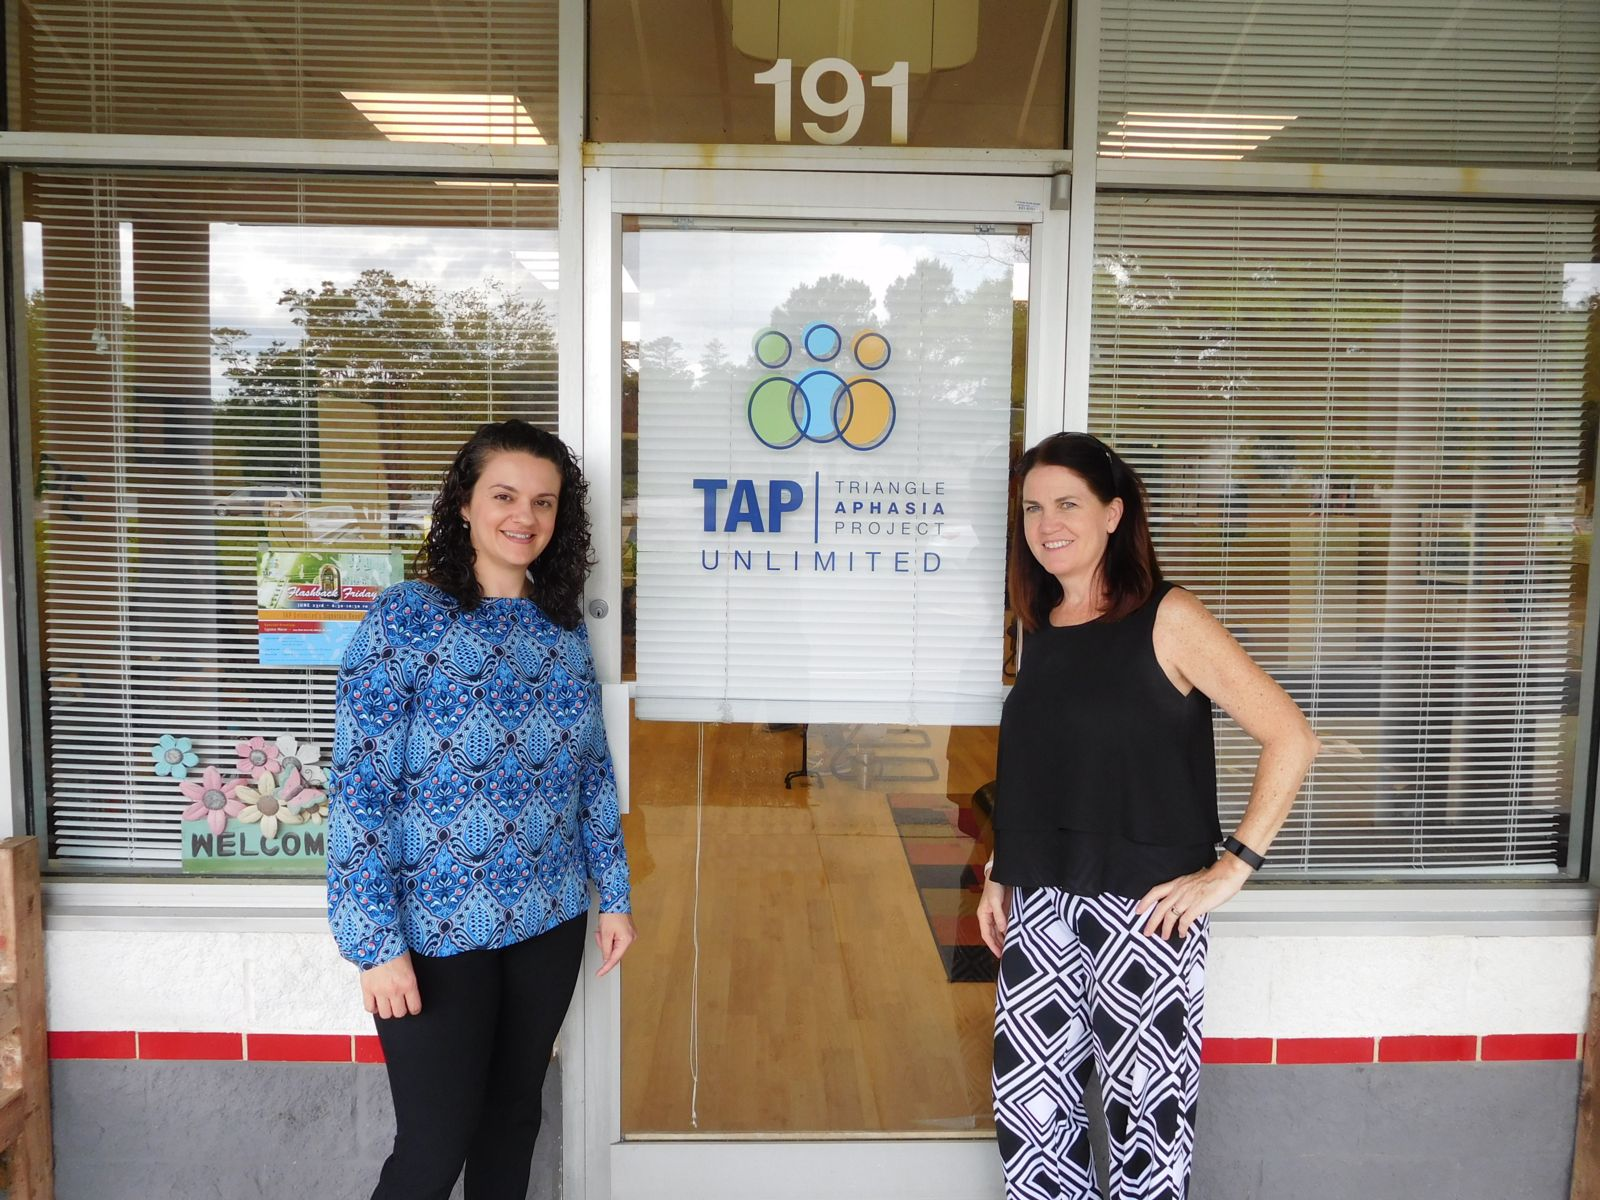 TAP's Maura Silverman with Jackie at the TAP Main Office.